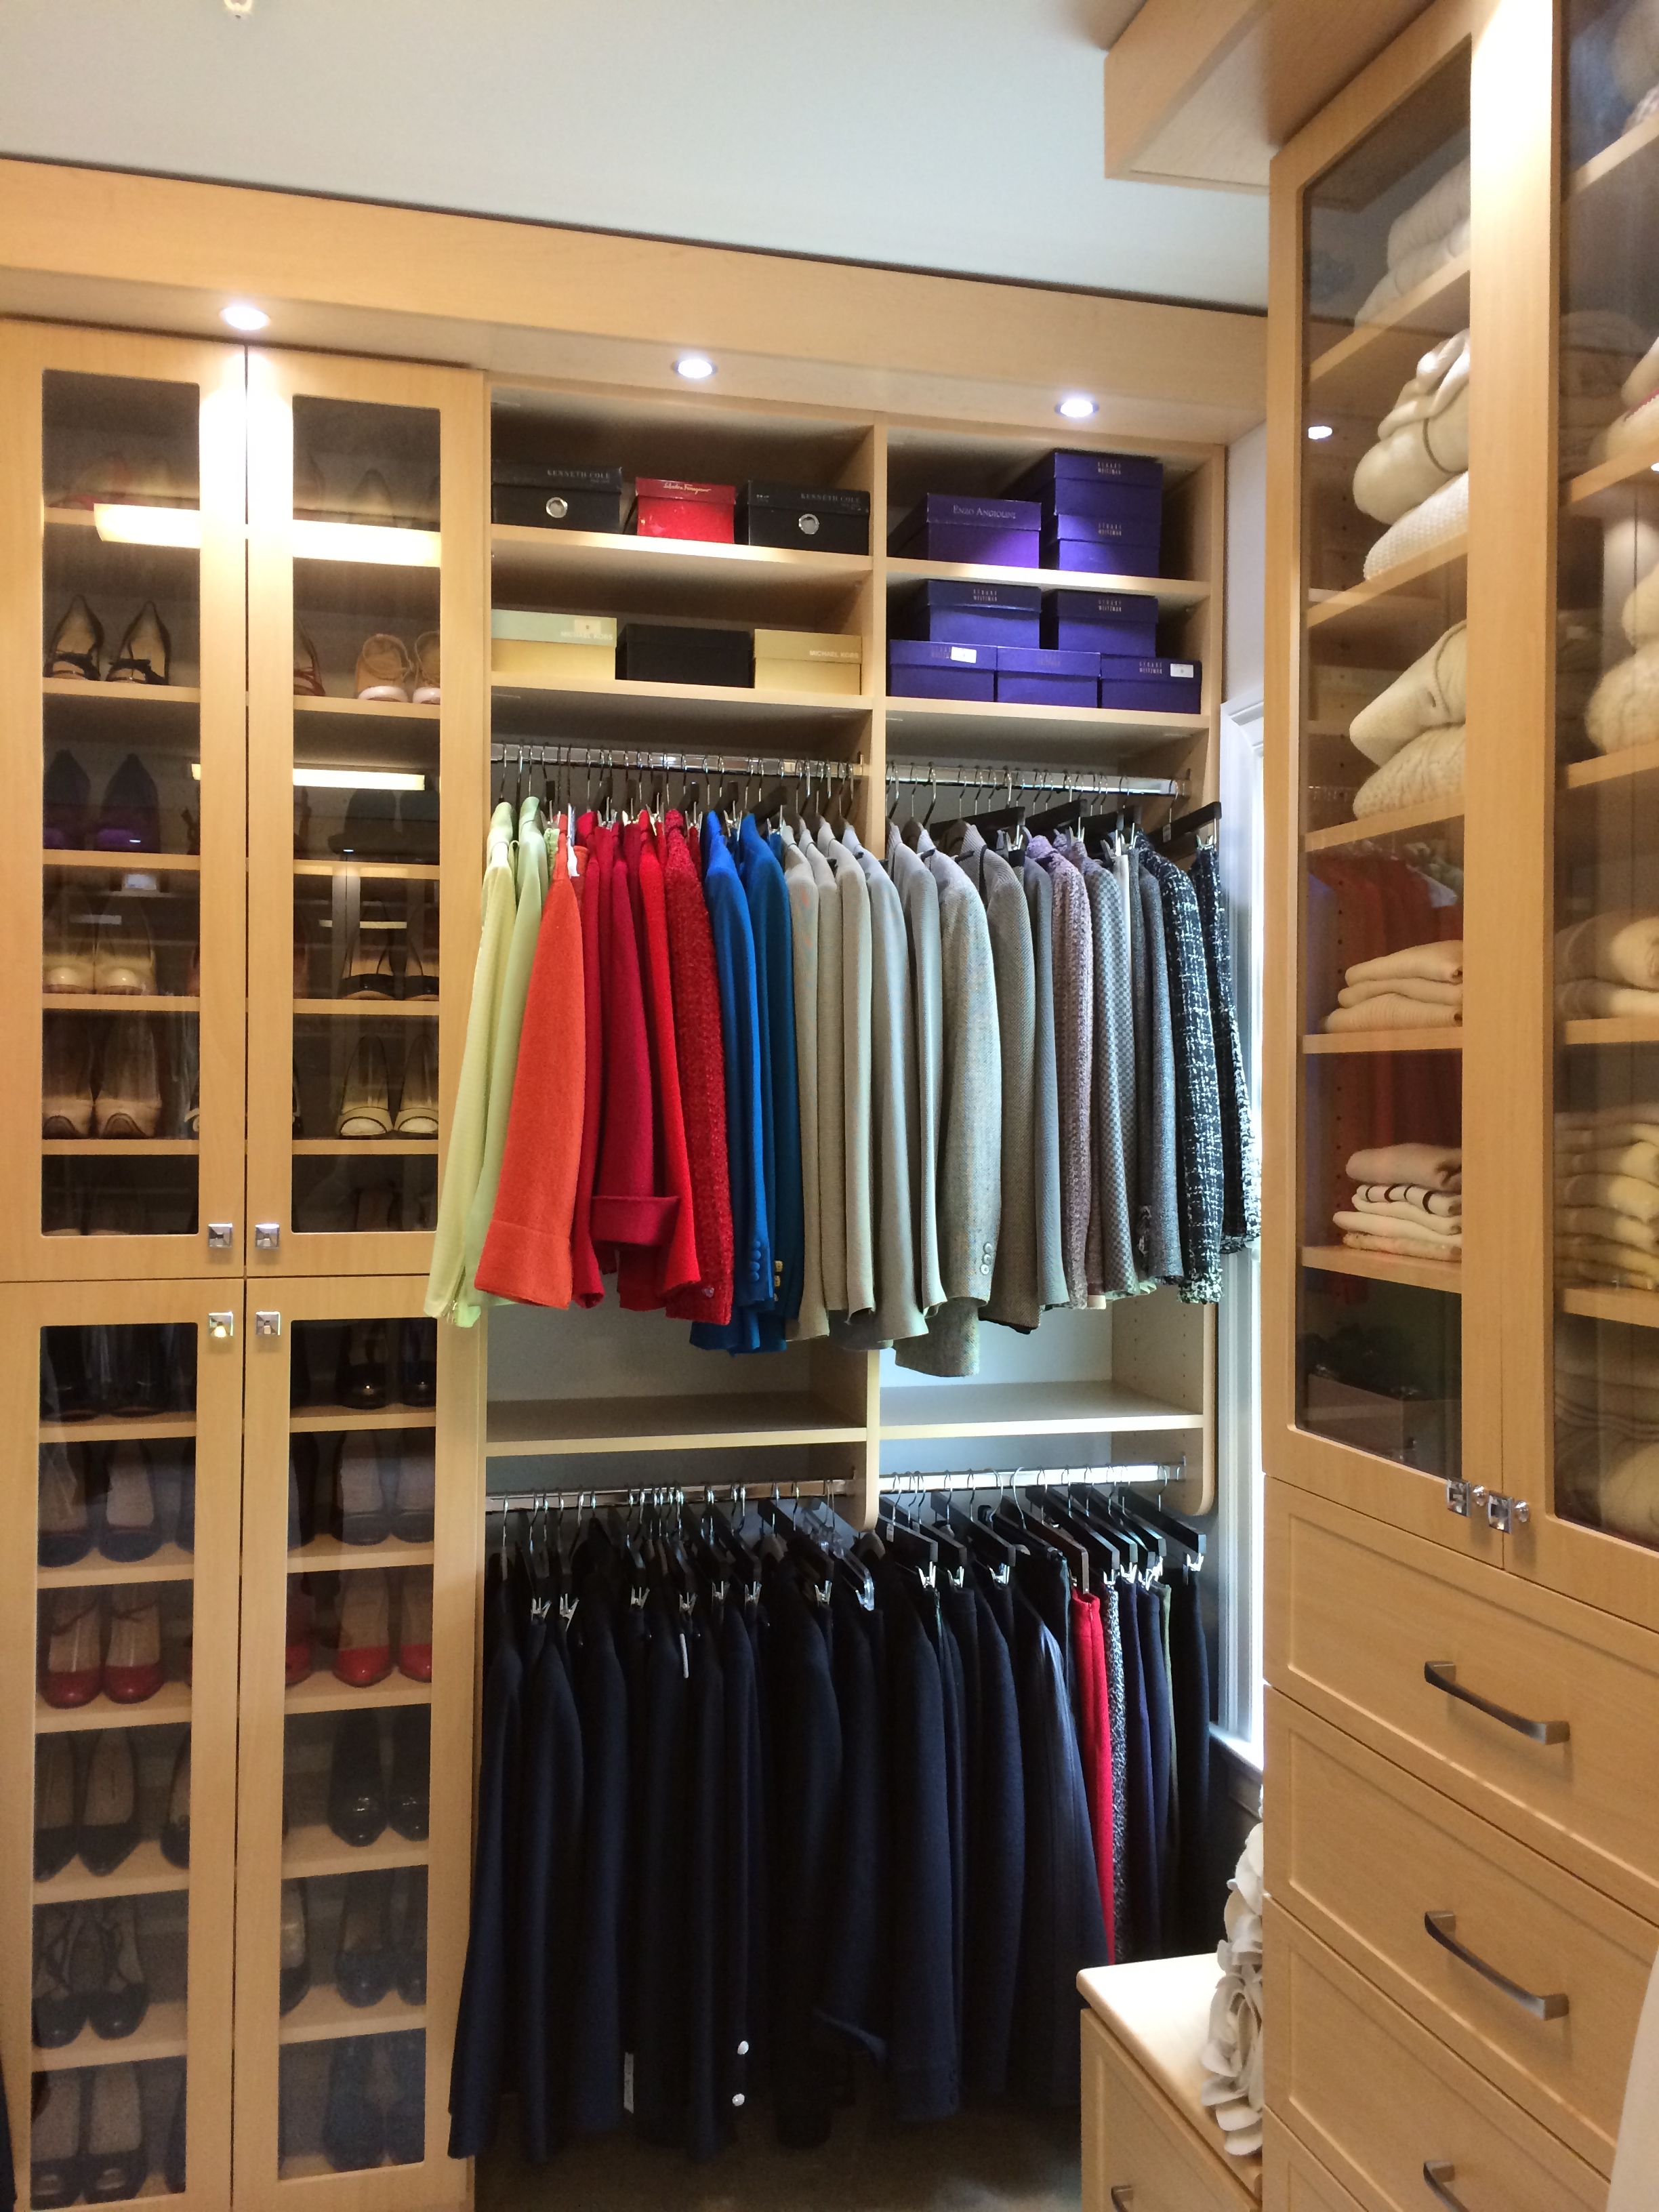 By Properly Dividing And Organizing Your Closet, Getting Ready Will